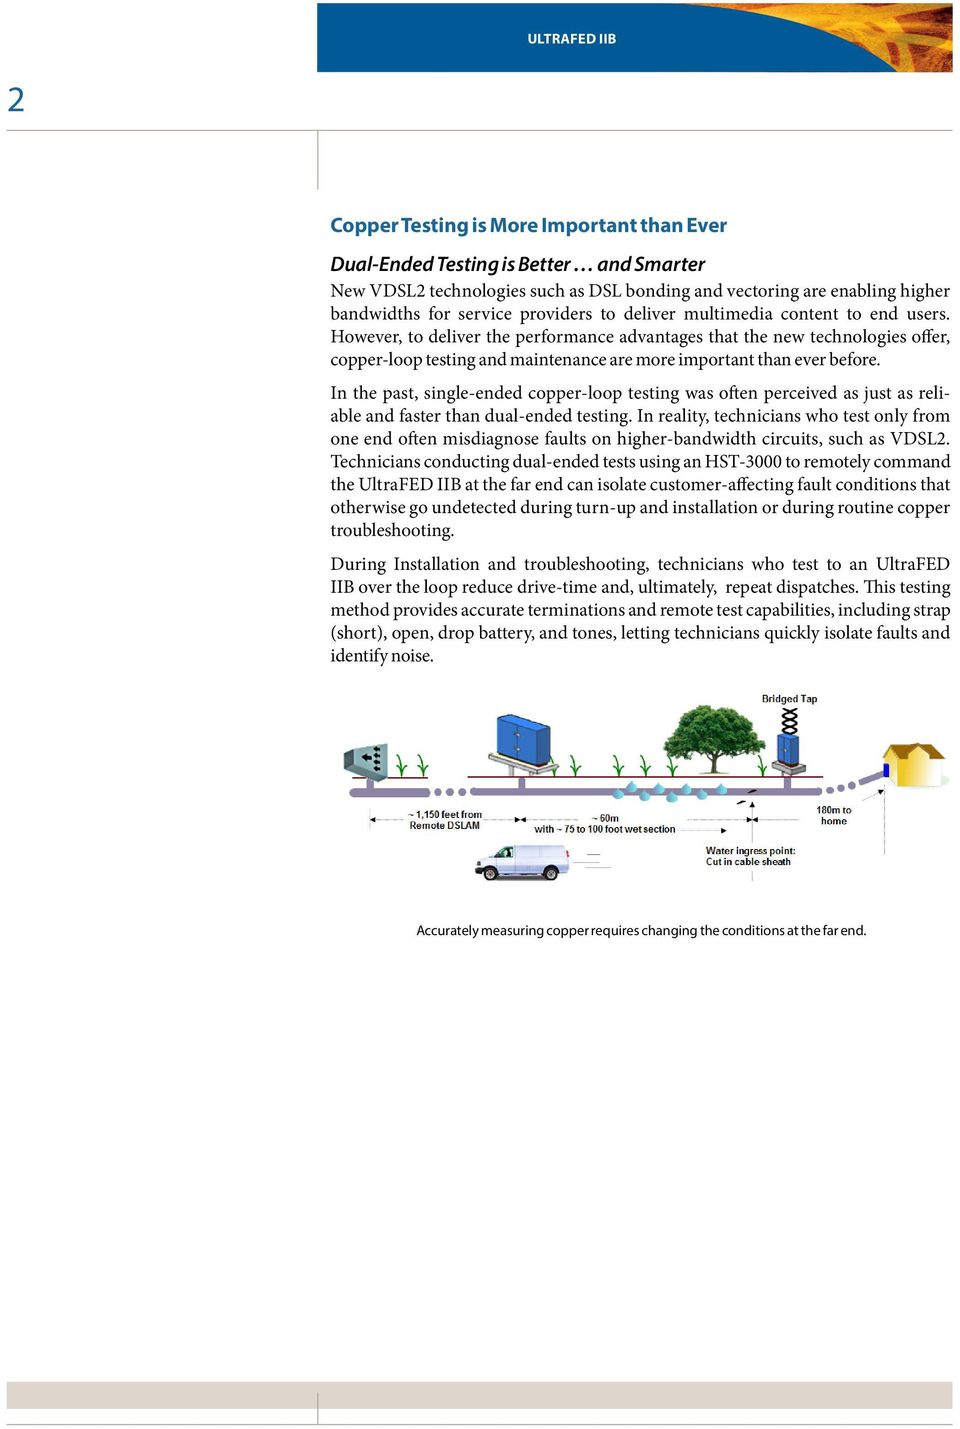 In the past, single-ended copper-loop testing was often perceived as just as reliable and faster than dual-ended testing.